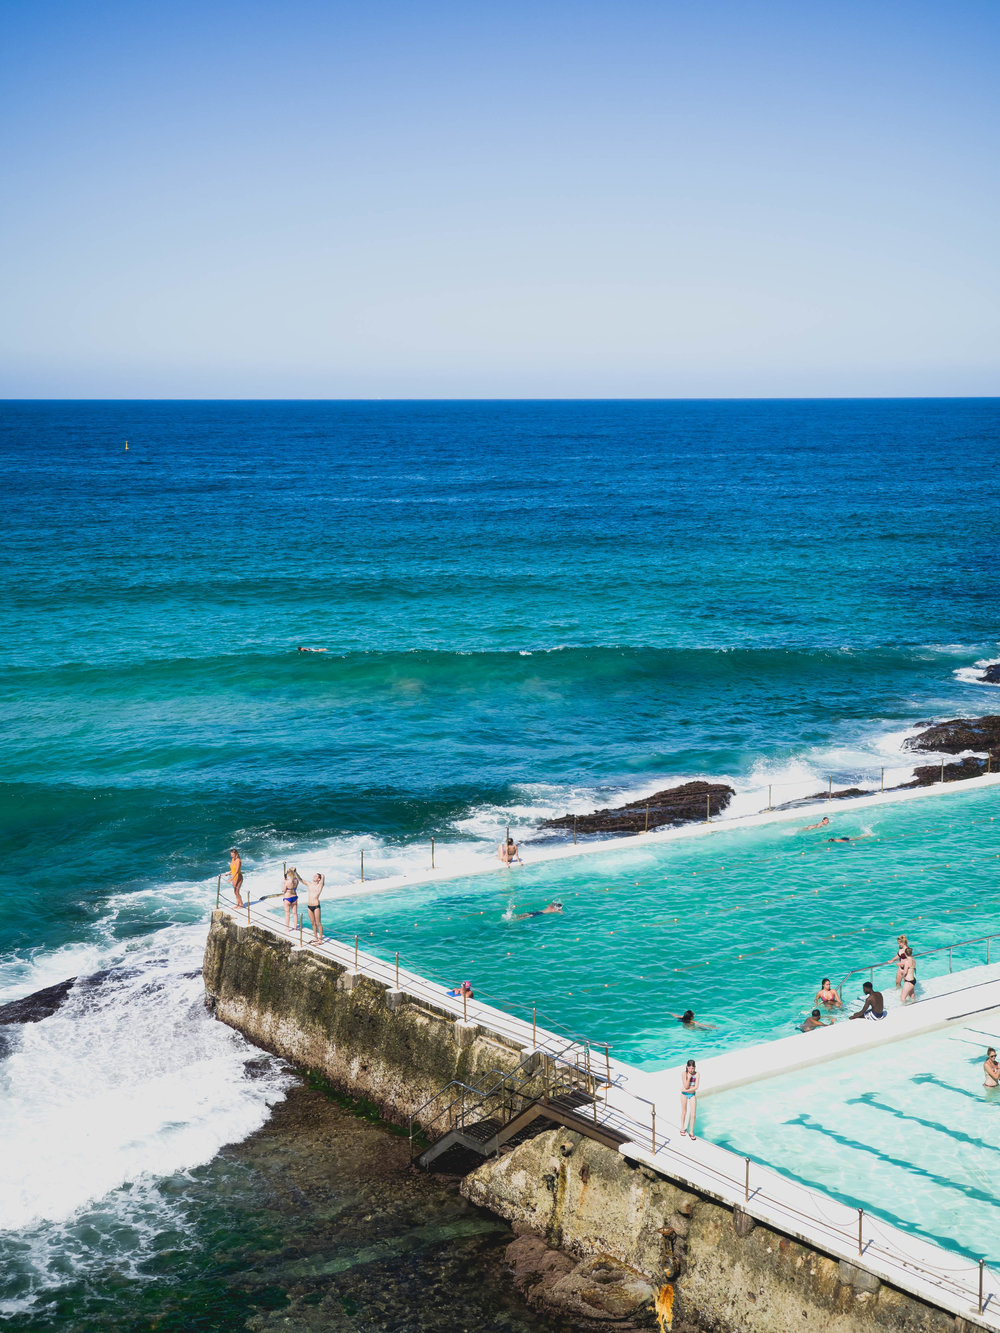 bondi icebergs swim club.